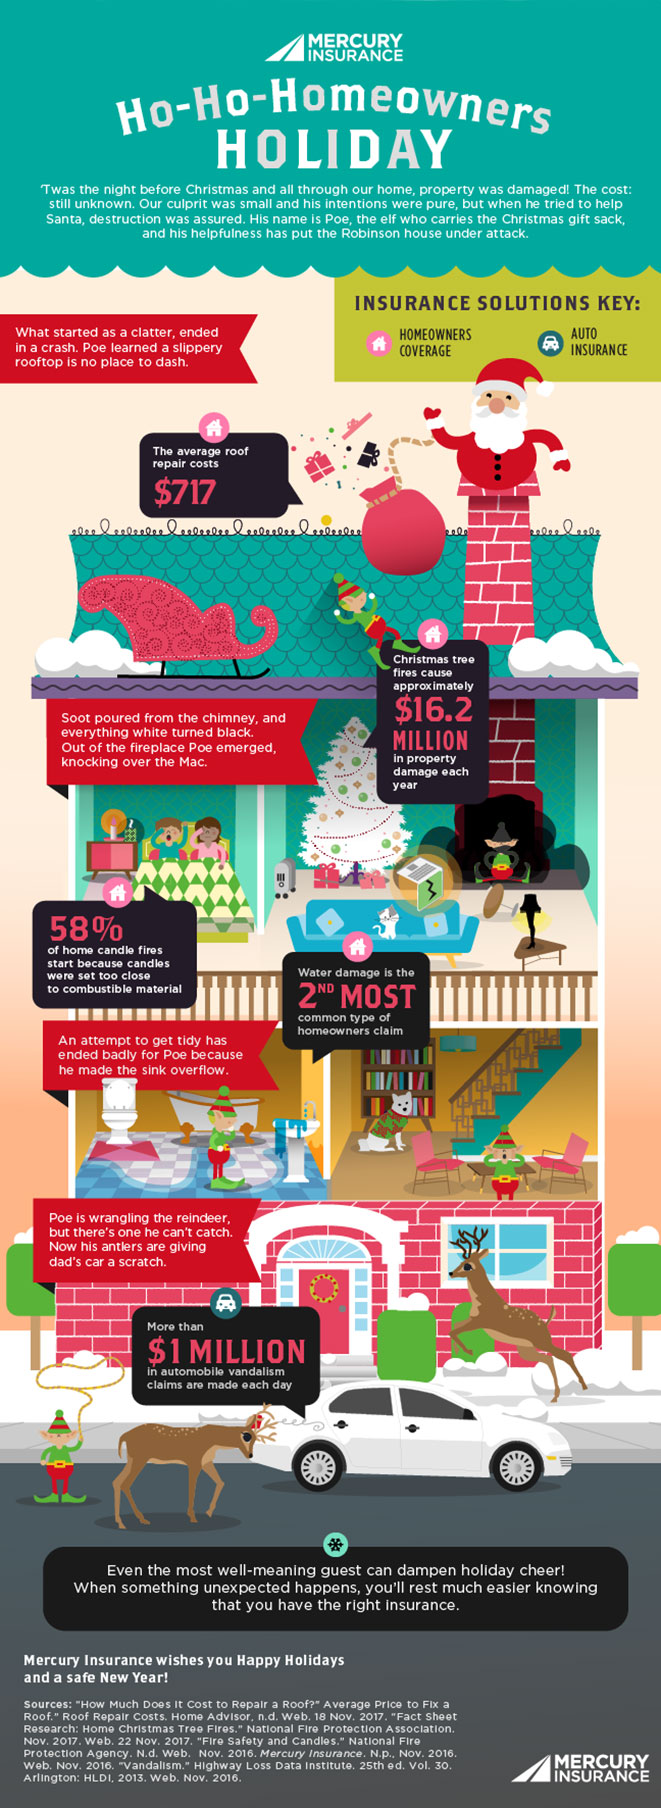 Holiday Special: Why Should You Keep Your Home Insured? - Infographic